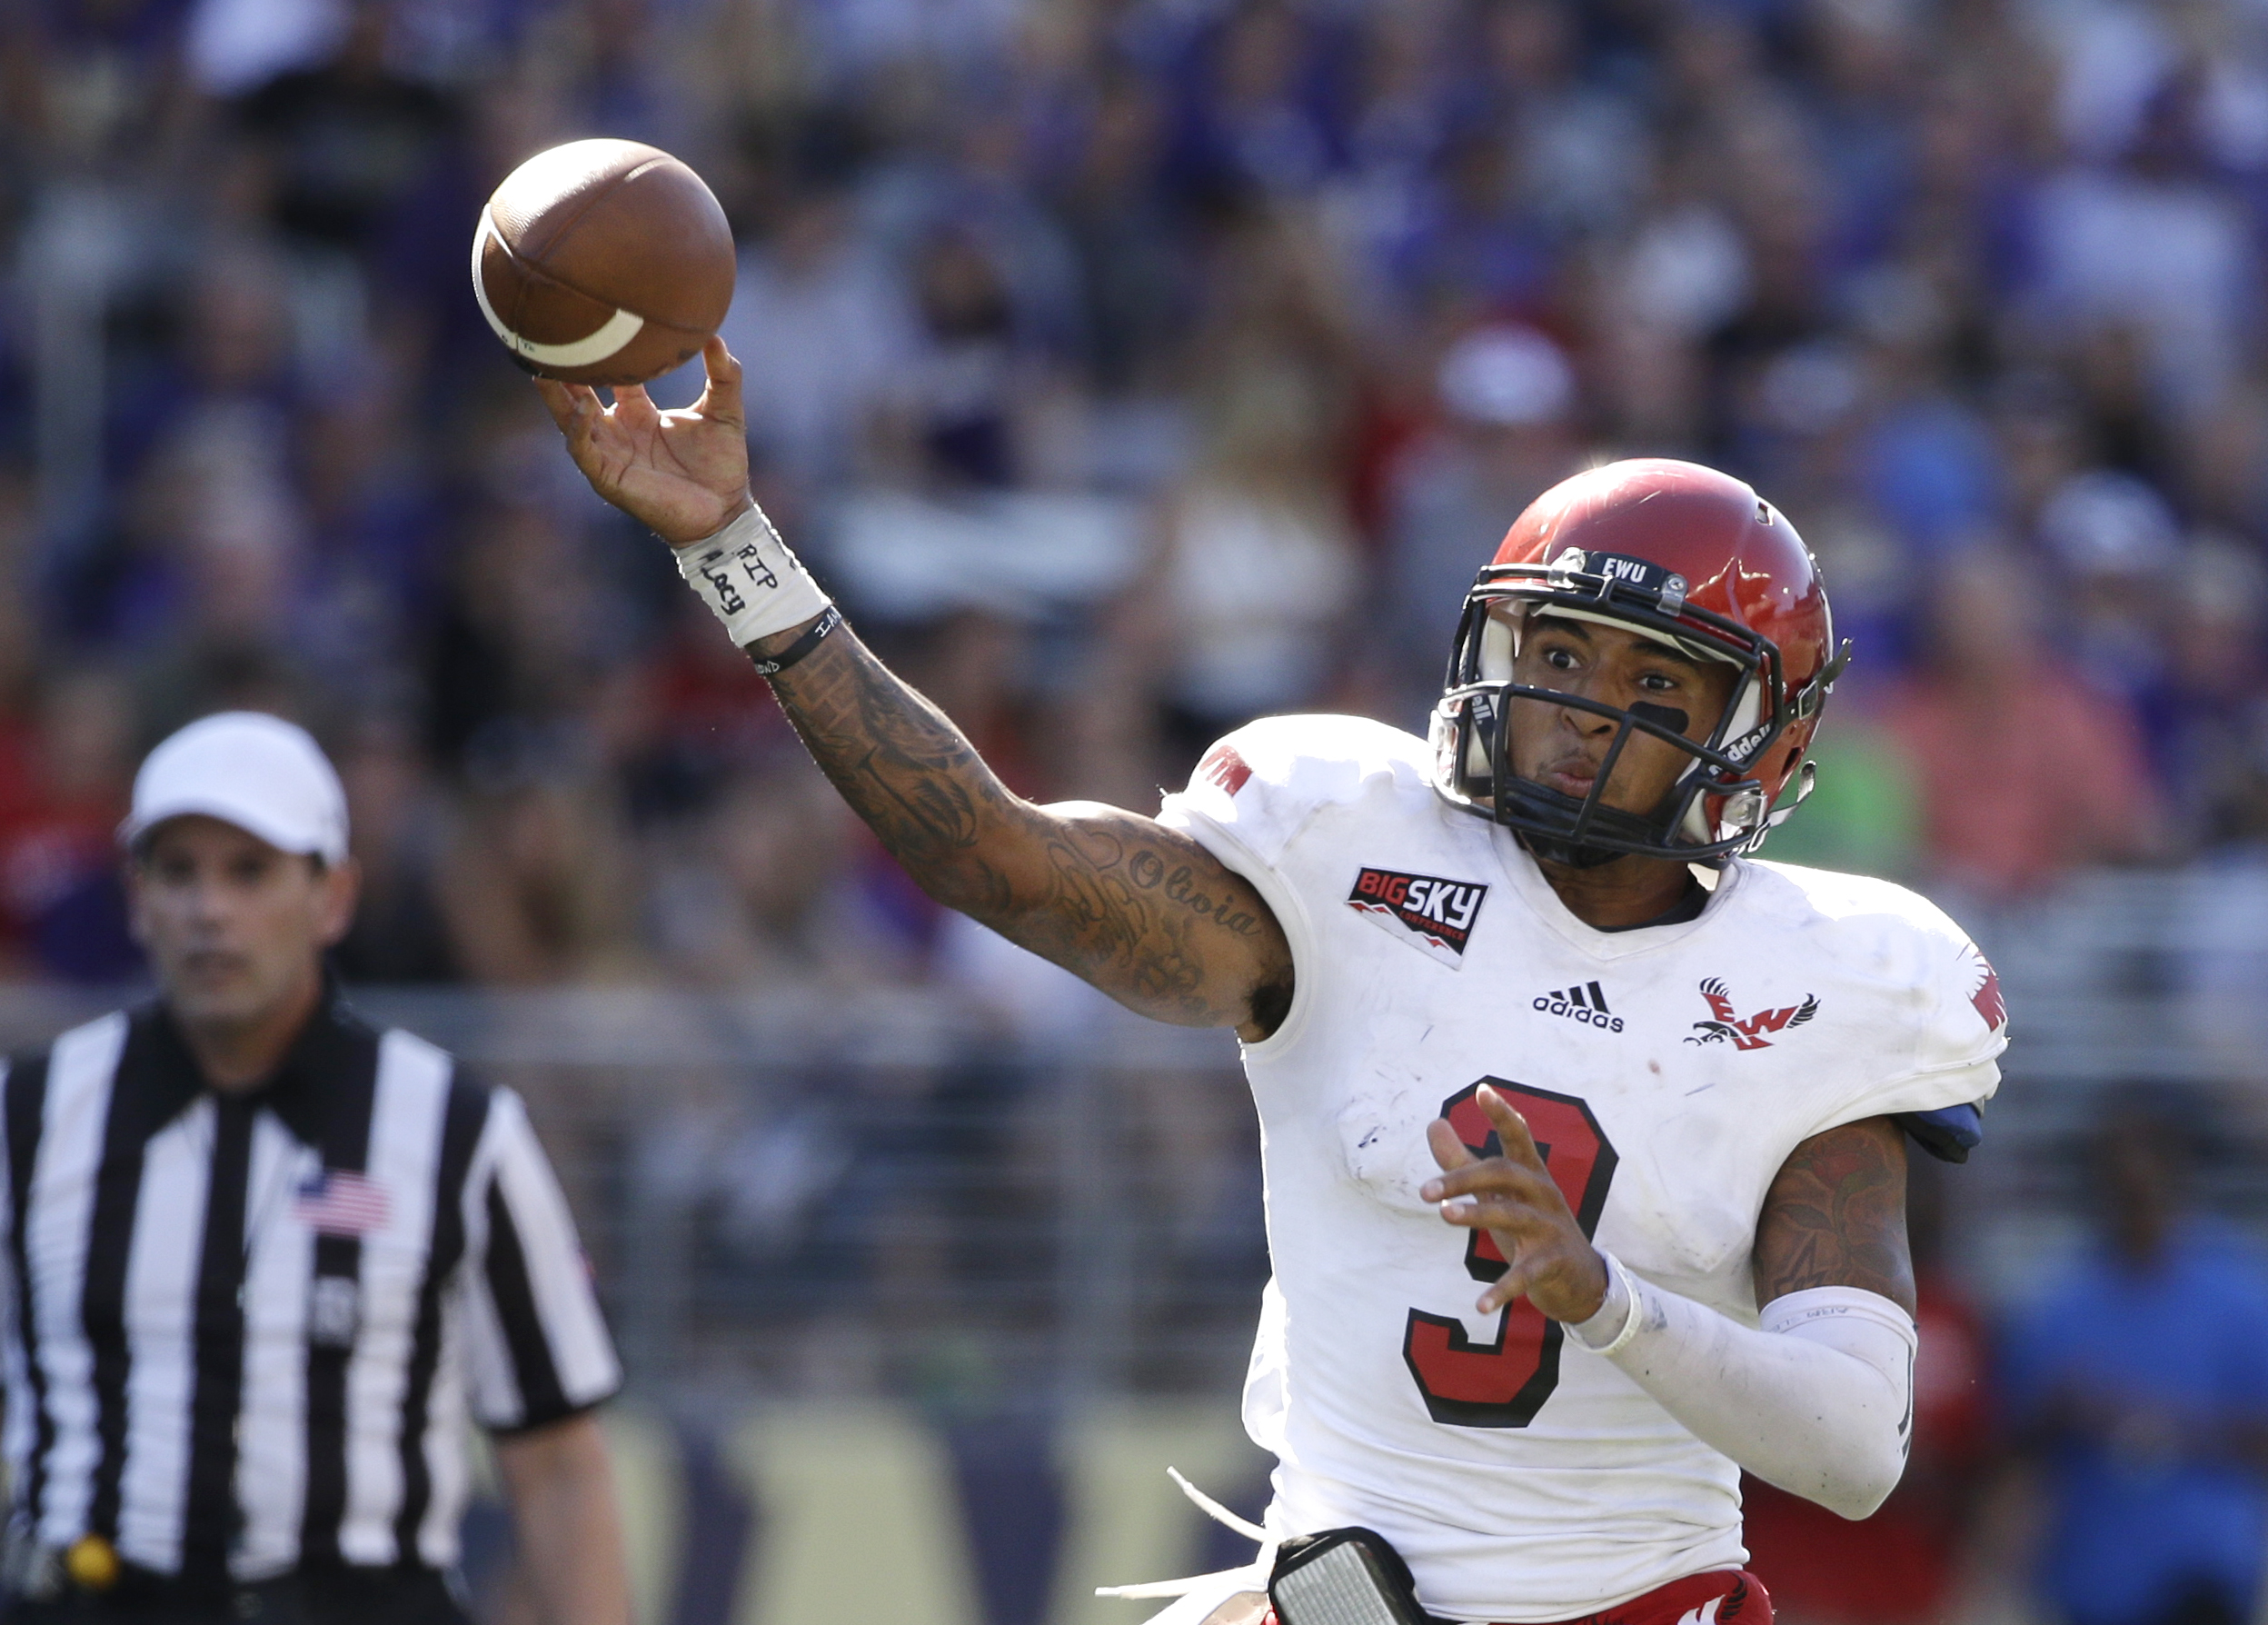 FILE - In this Sept. 6, 2014, file photo, Eastern Washington quarterback Vernon Adams Jr. throws a pass against the Washington Huskies in the second half of an NCAA college football game  in Seattle, Wash. It's not lost on Oregon that Vernon Adams' first